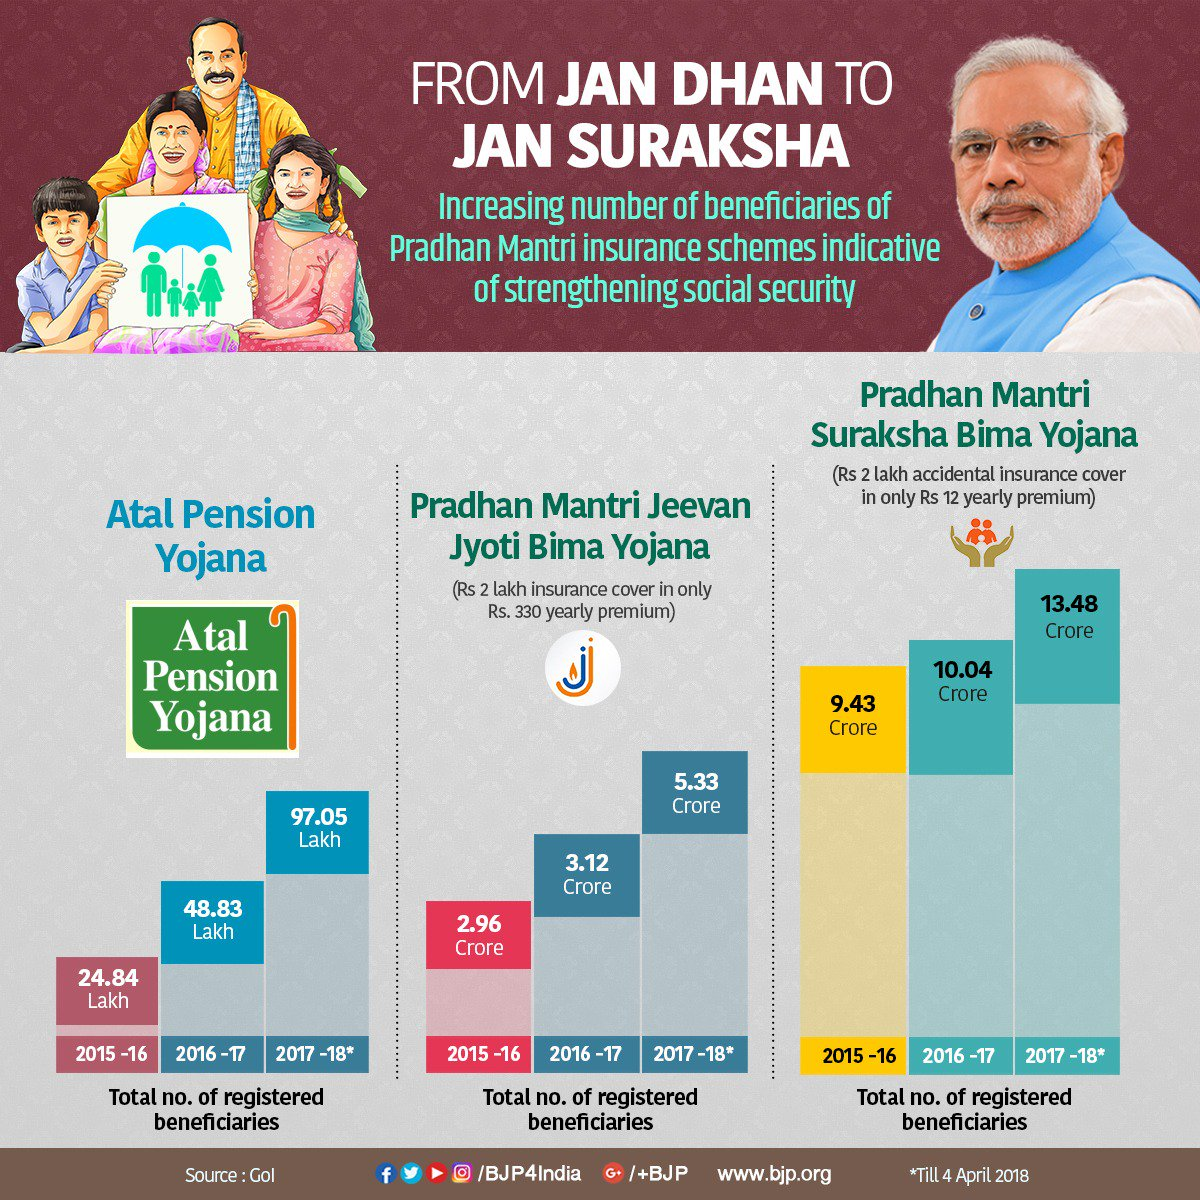 From Jan Dhan to Jan Suraksha : Phenomenal coverage of Atal Pension Yojana and Pradhan Mantri insurance schemes is strengthening social security, especially for the poor, marginalised and senior citizens.